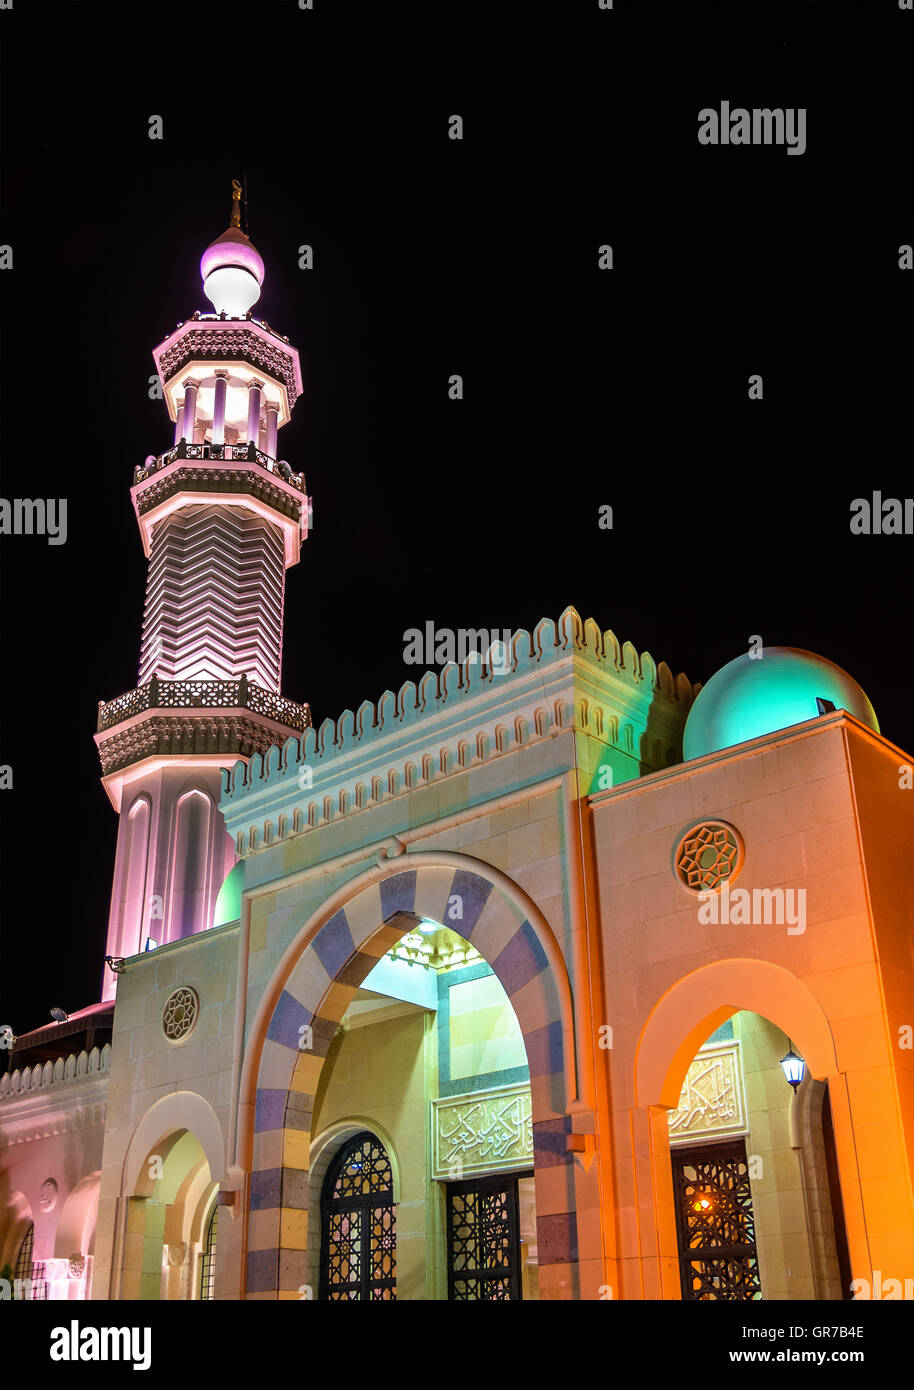 Sharif Hussein Bin Ali mosque in Aqaba - Stock Image